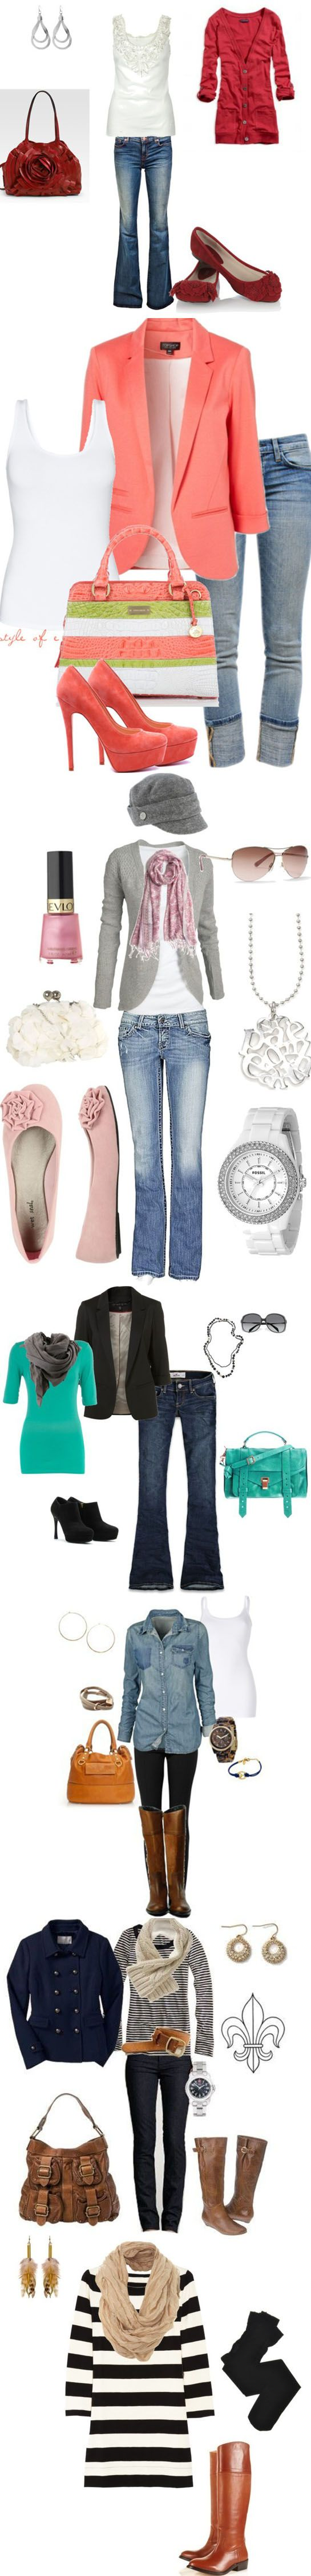 Cute Fall Looks: Autumn Clothing, Cute Fall Fashion, Outfit Idea, Honeymoons Outfit, Fall Looks, Fall Outfit, Cute Outfit, How To Wear Blazers, Fall Idea